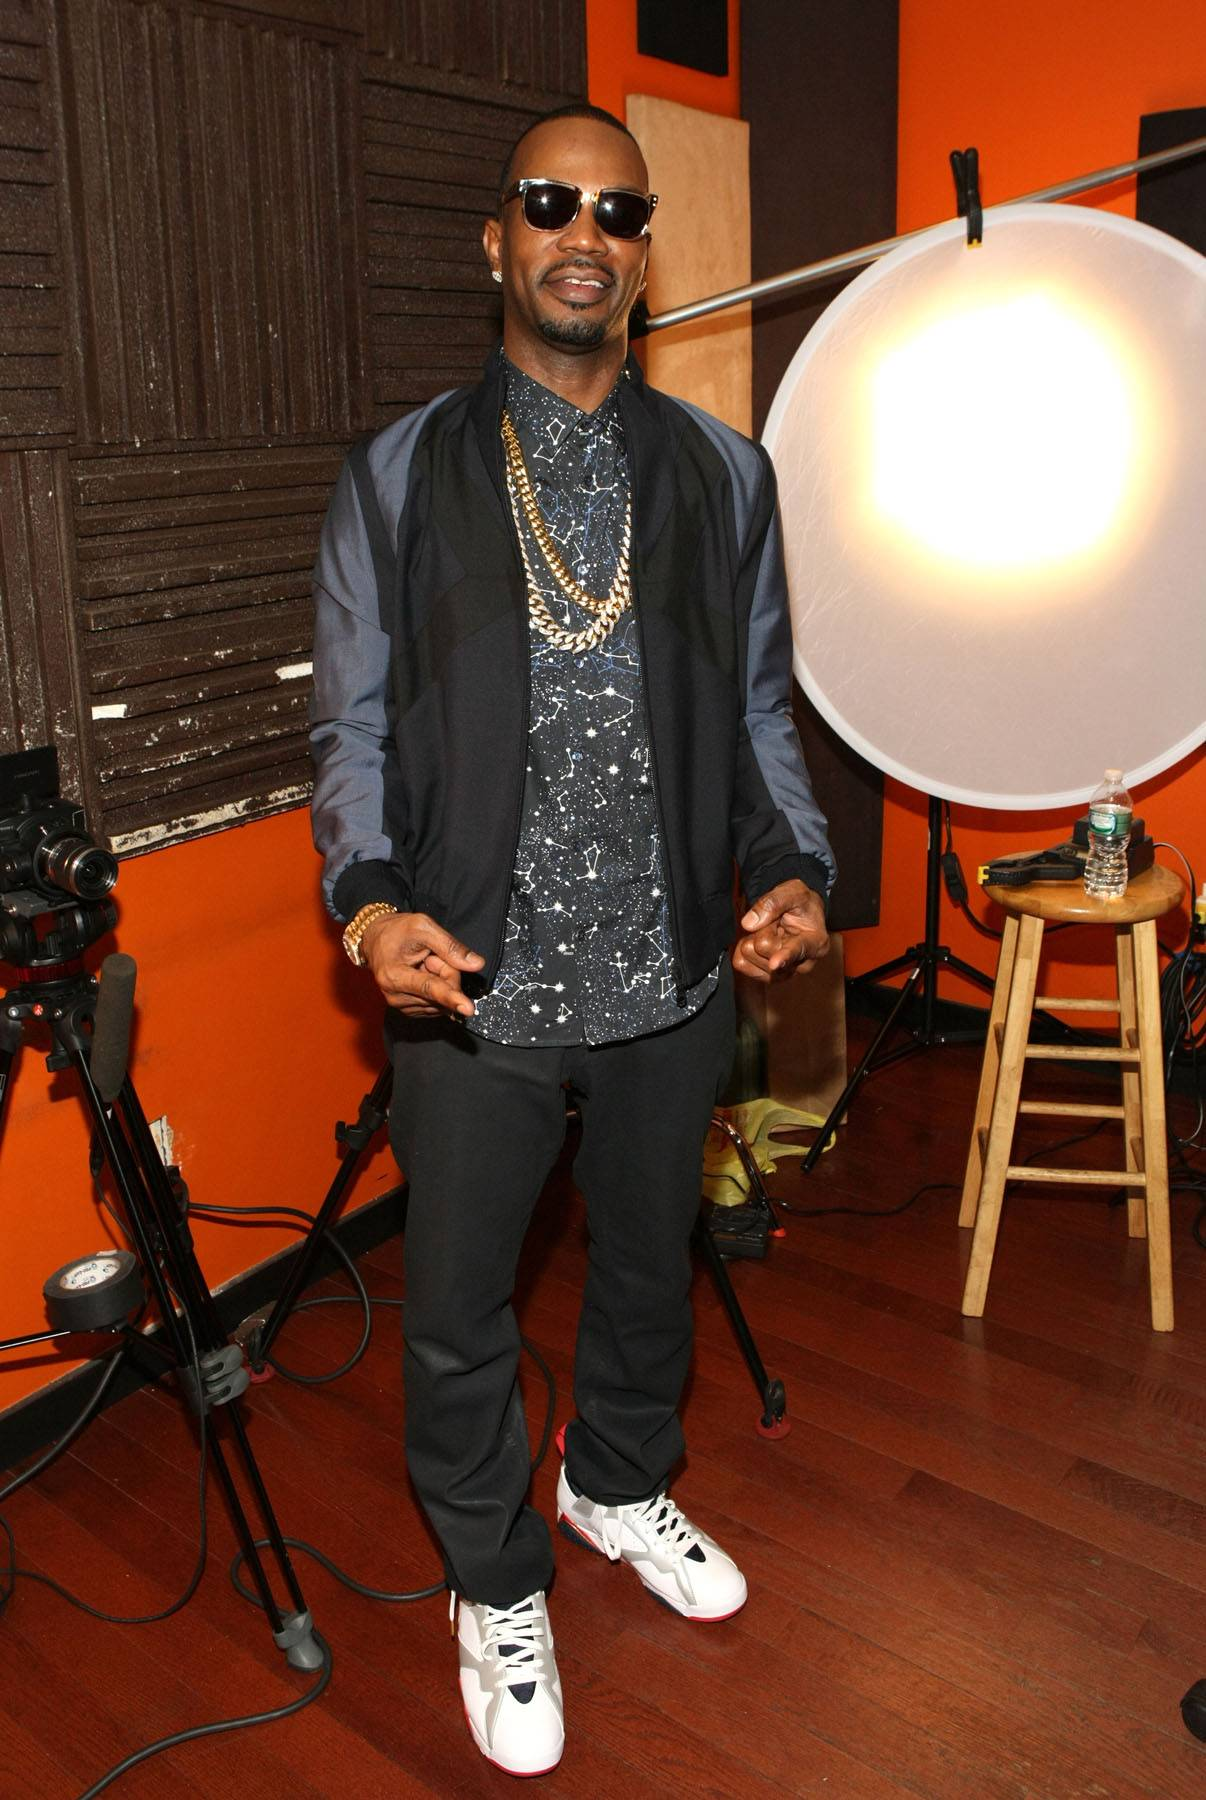 White Collar Swag - Juicy J mixes corporate office attire with that Tennessee swag. (Photo: Bennett Raglin/BET/Getty Images for BET)